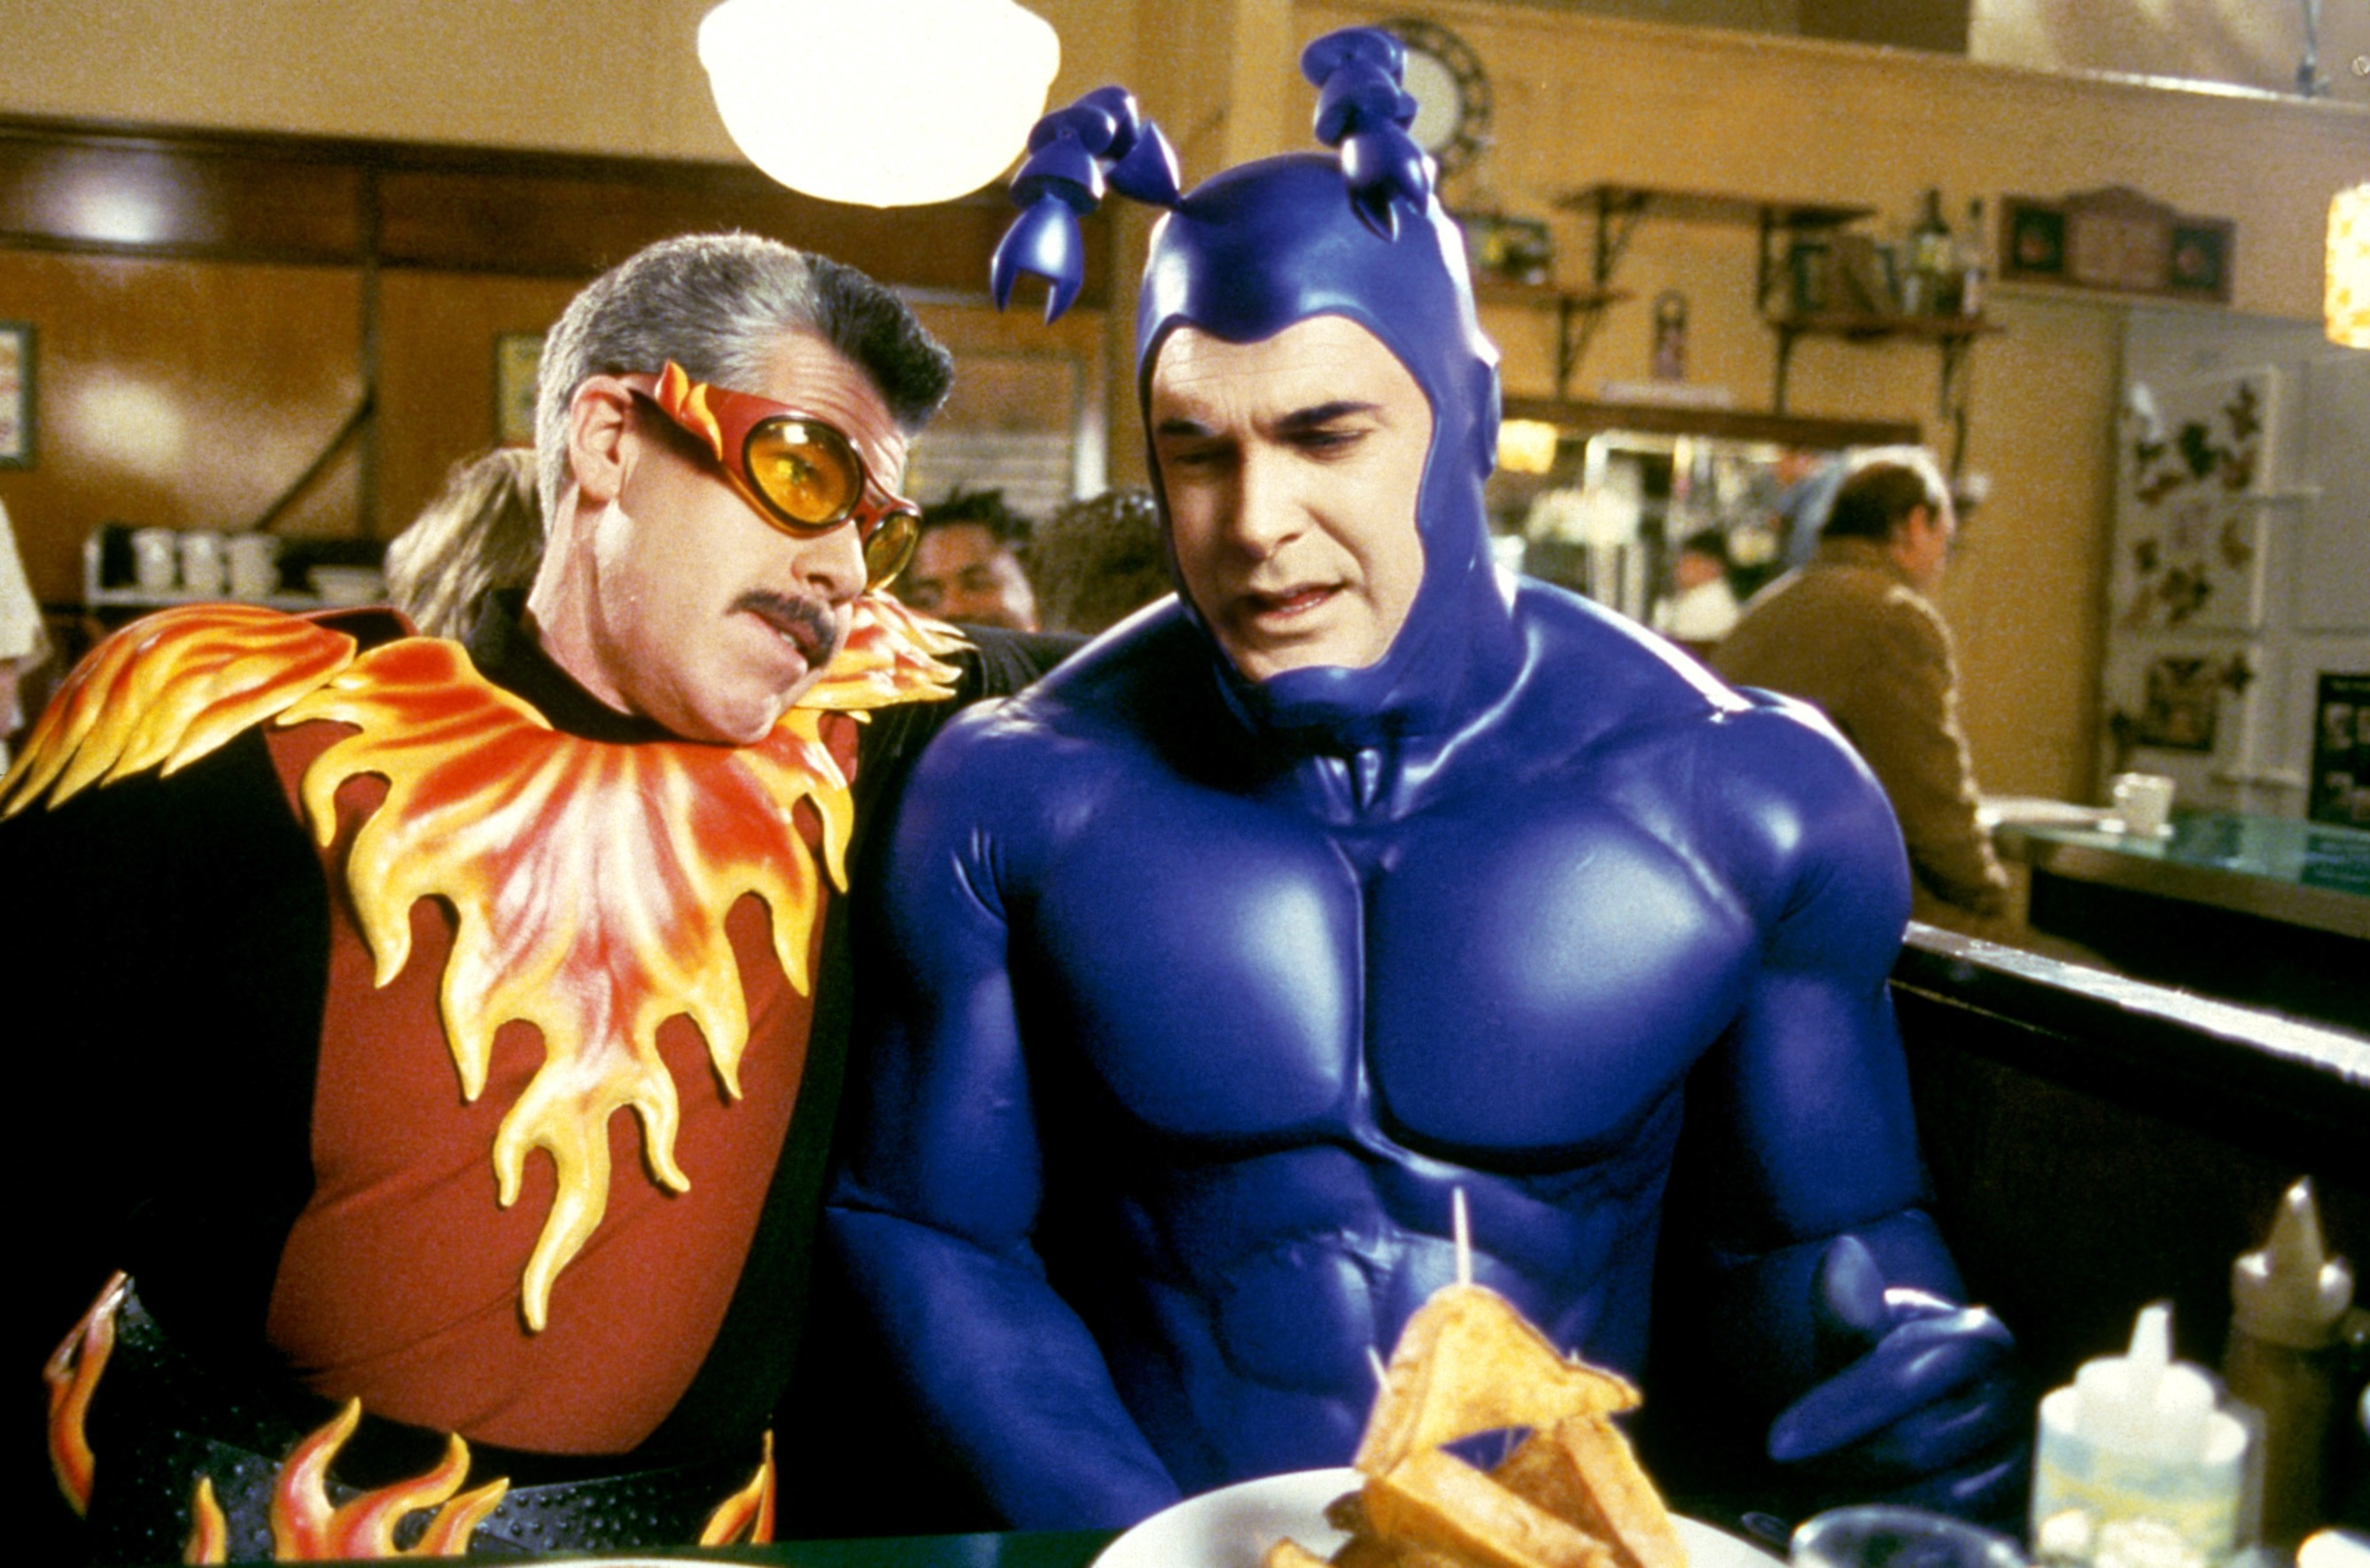 Cult Sitcom 'The Tick' Resurrected by Amazon